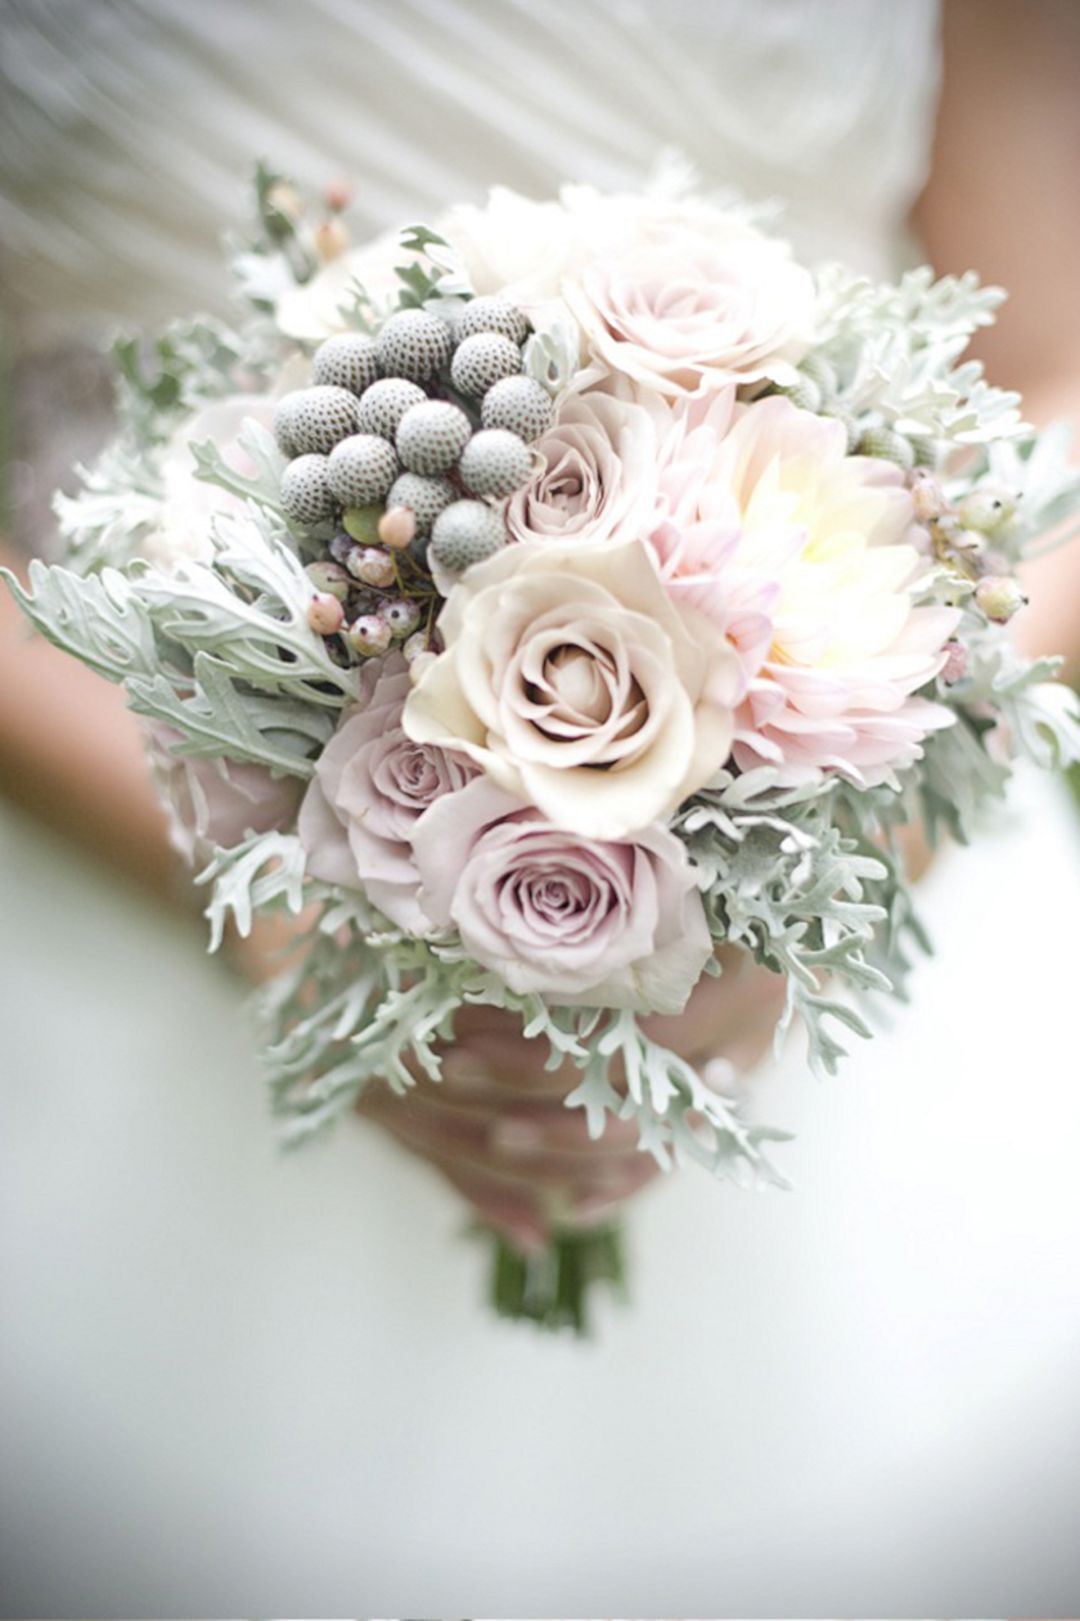 Make Your Winter Wedding Amazing With Absolutely Beautiful Flower ...